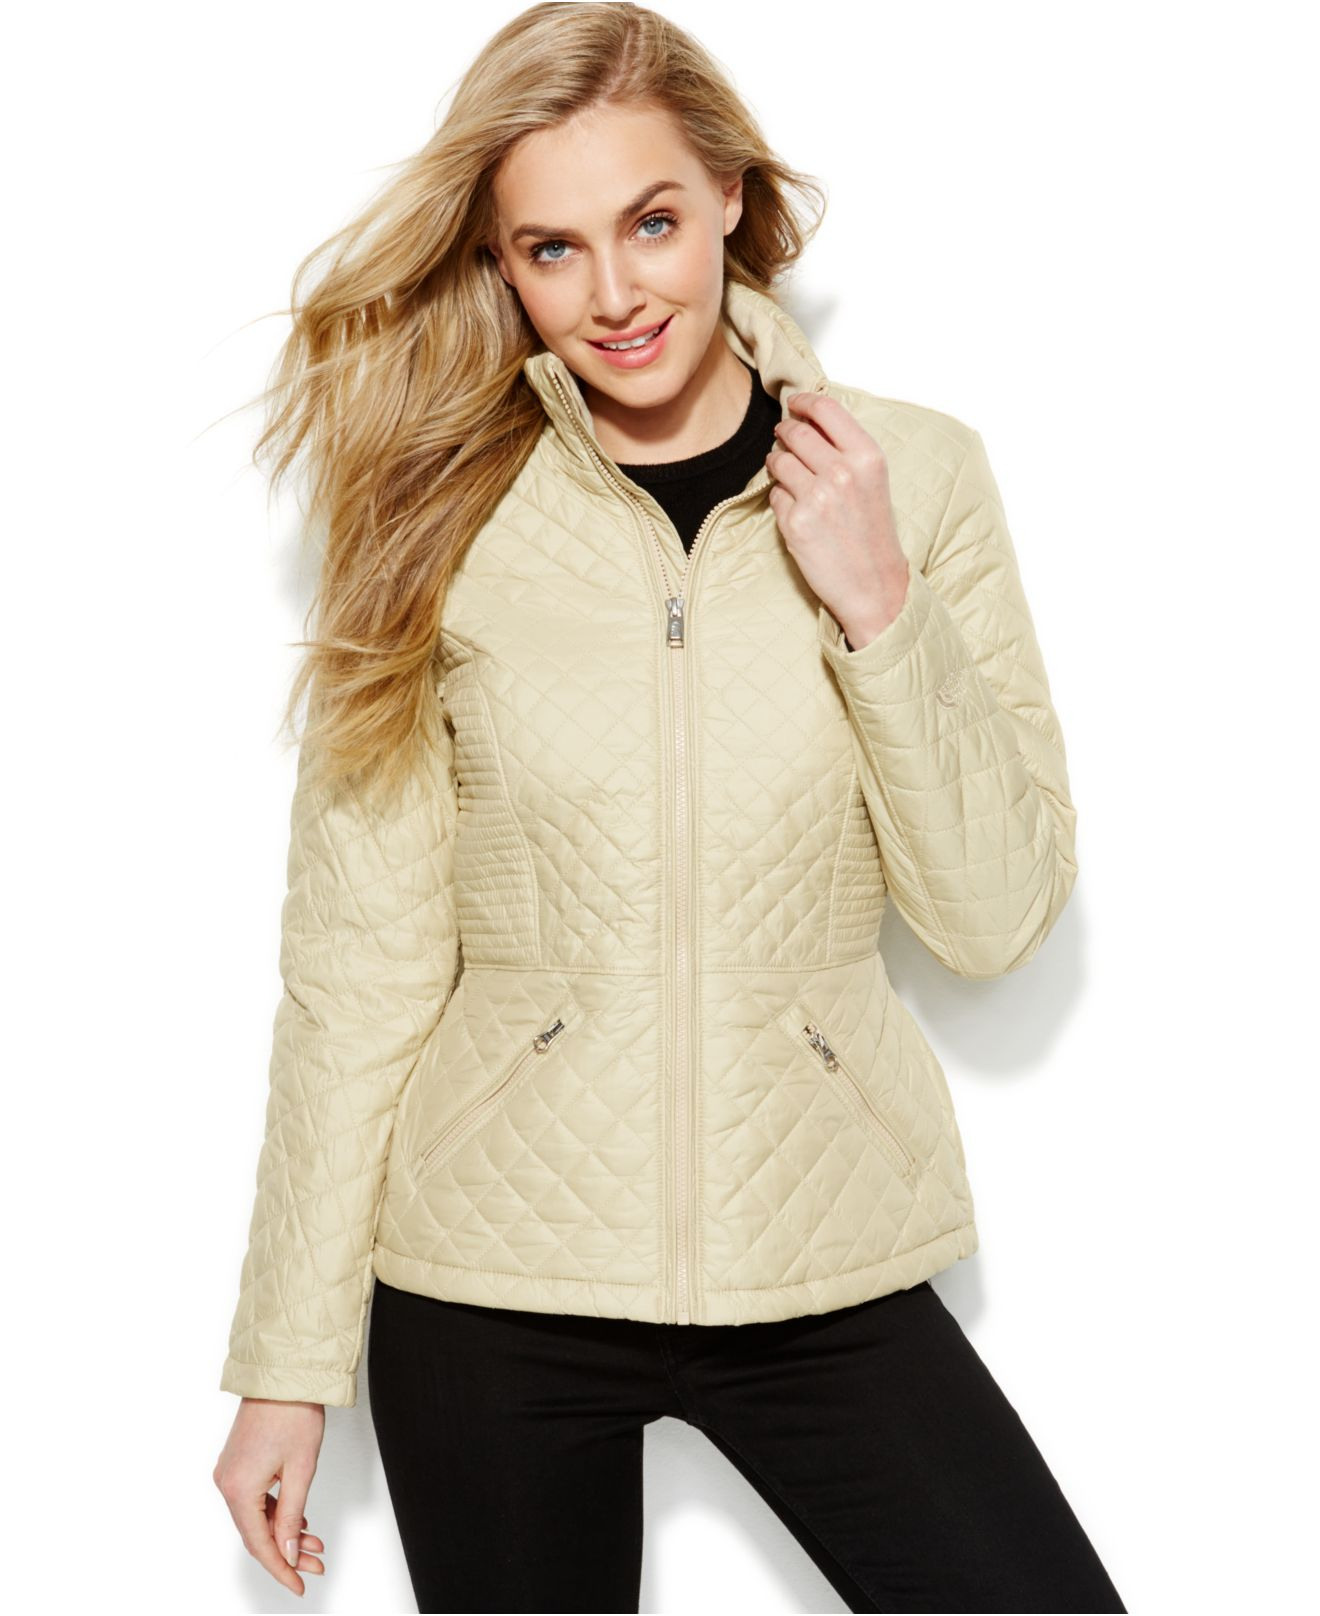 cd304fbc2b26 Lyst - The North Face Insulated Luna Jacket in Natural